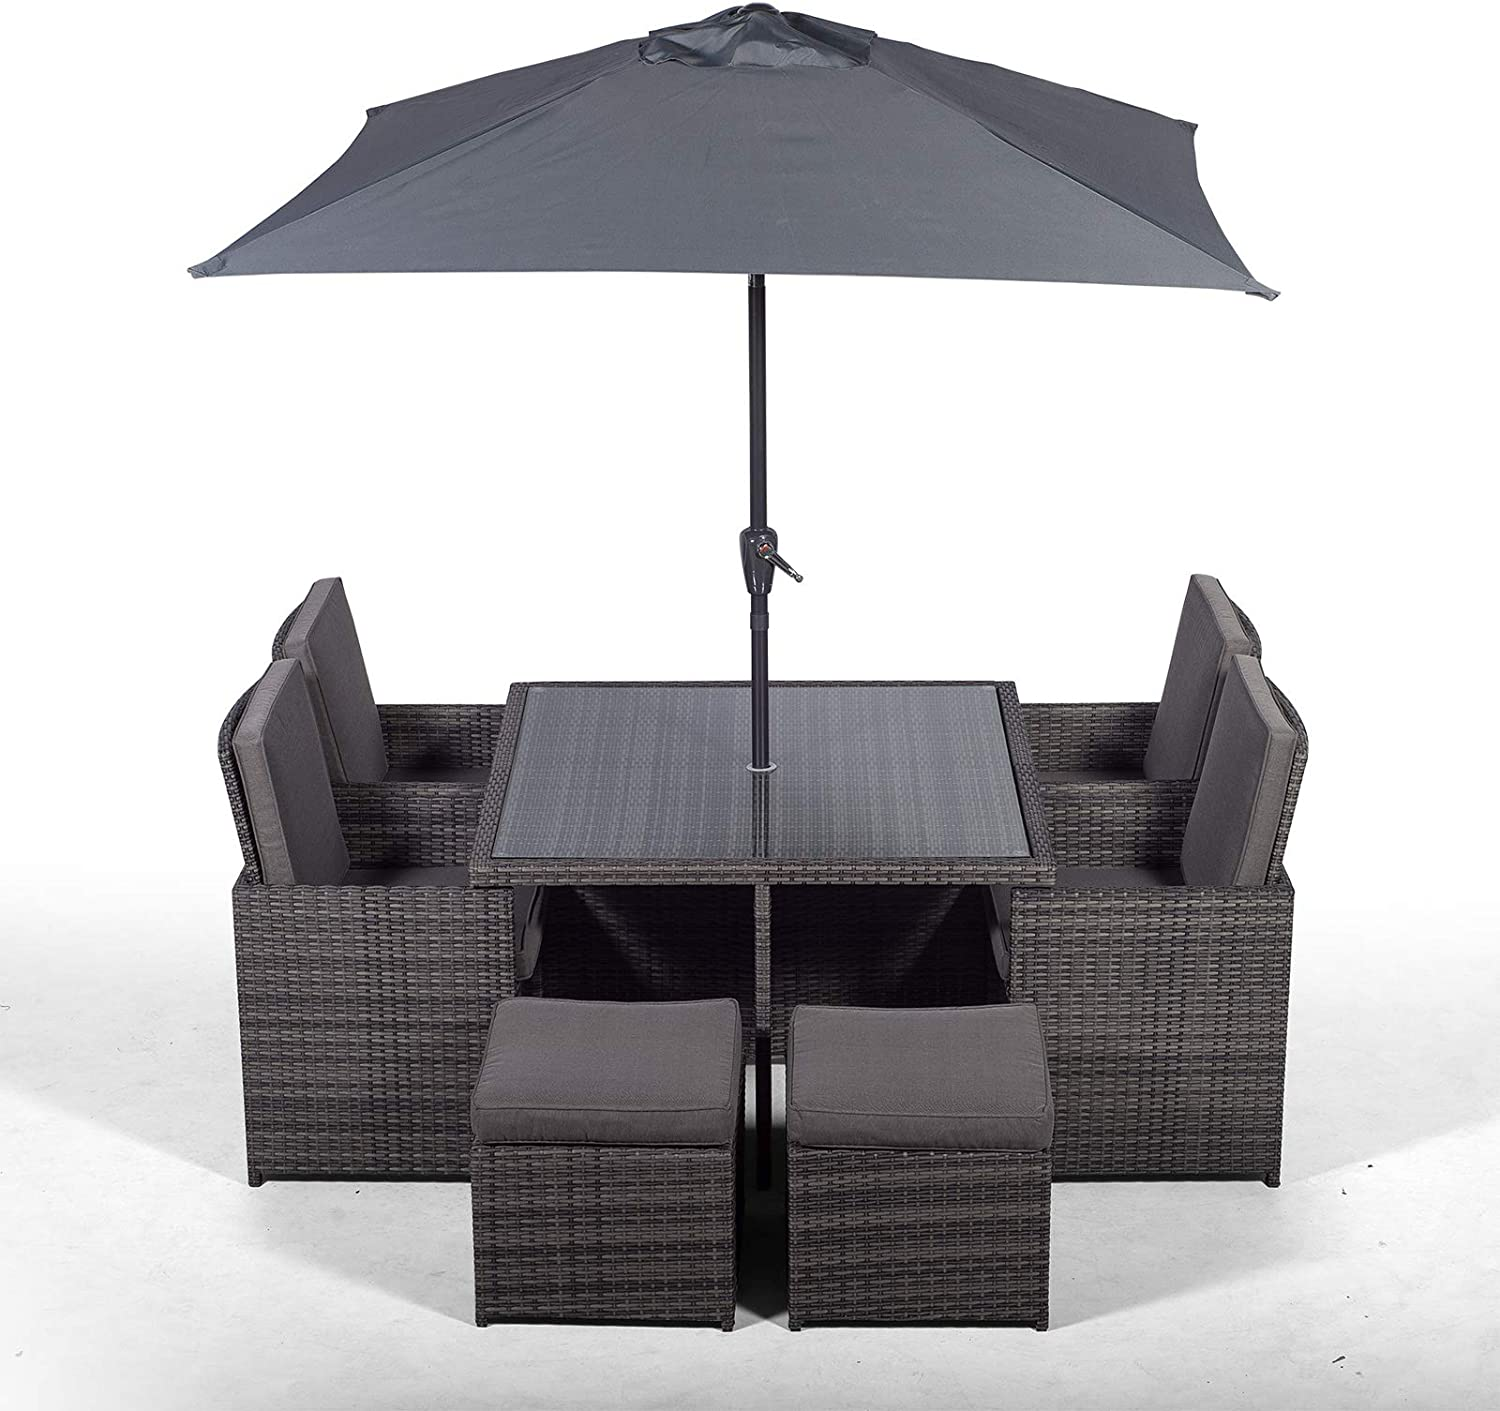 Giardino Rattan Cube Dining Set  Square 9 Seater Grey Rattan Dining Set   Outdoor Poly Rattan Garden Table & Chairs Set  Patio Conservatory Wicker